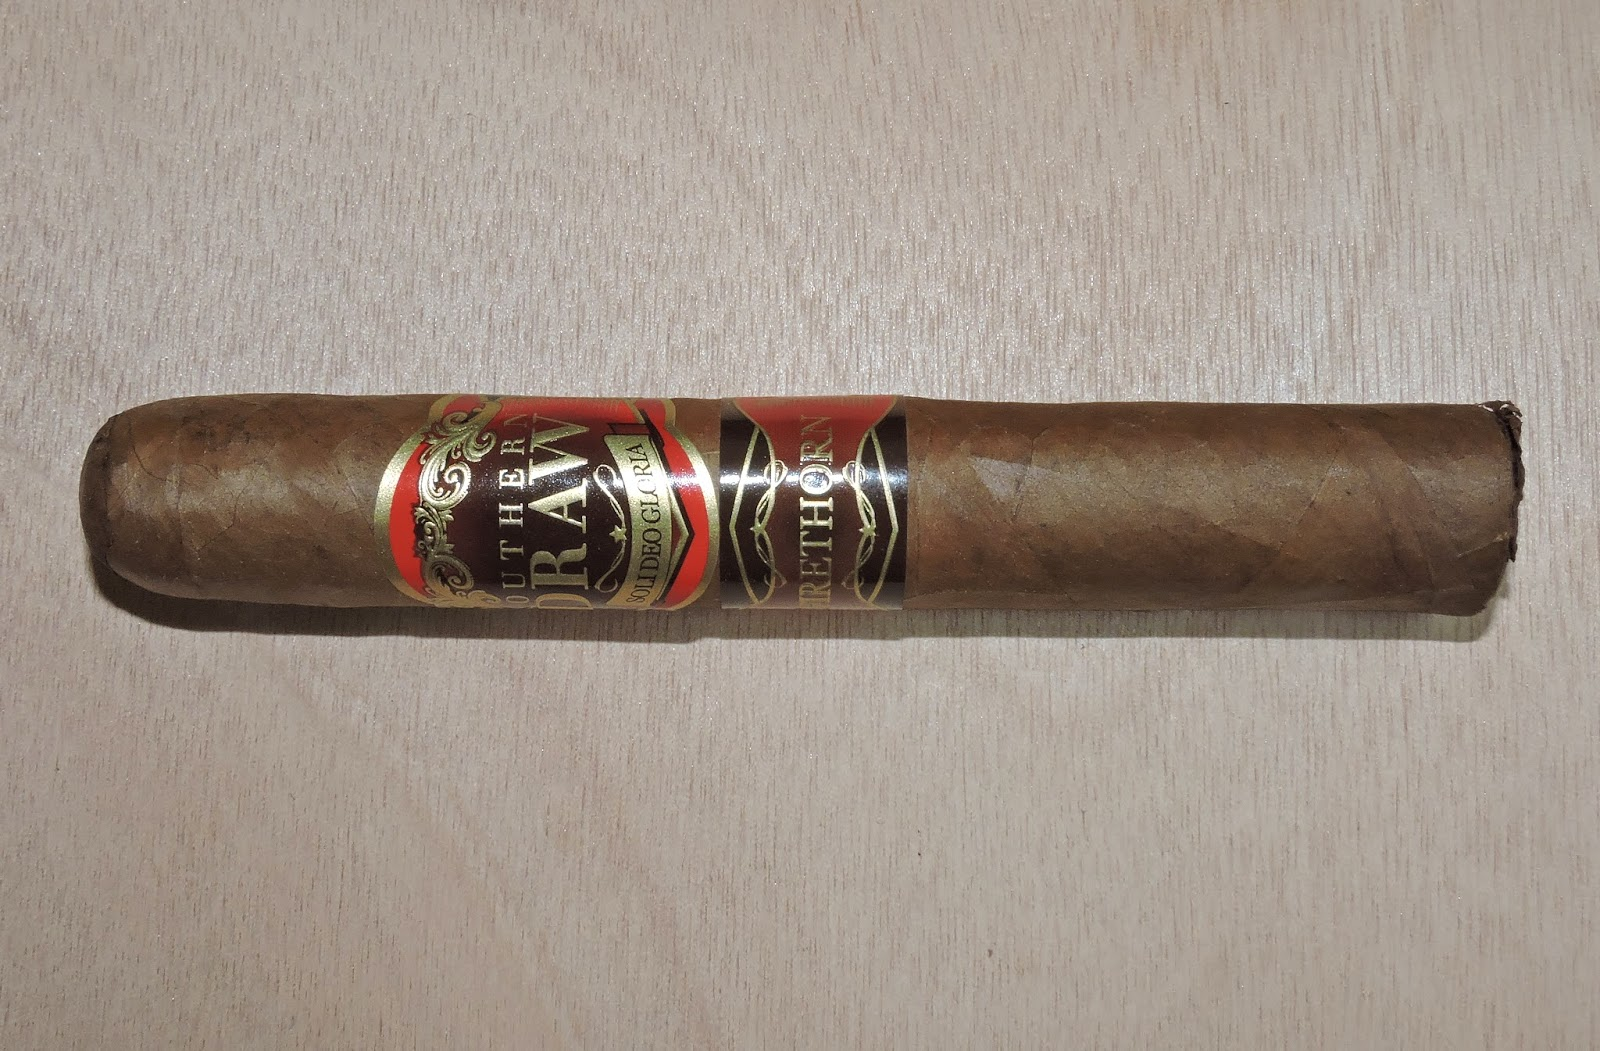 Cigar Review: Southern Draw Firethorn Robusto